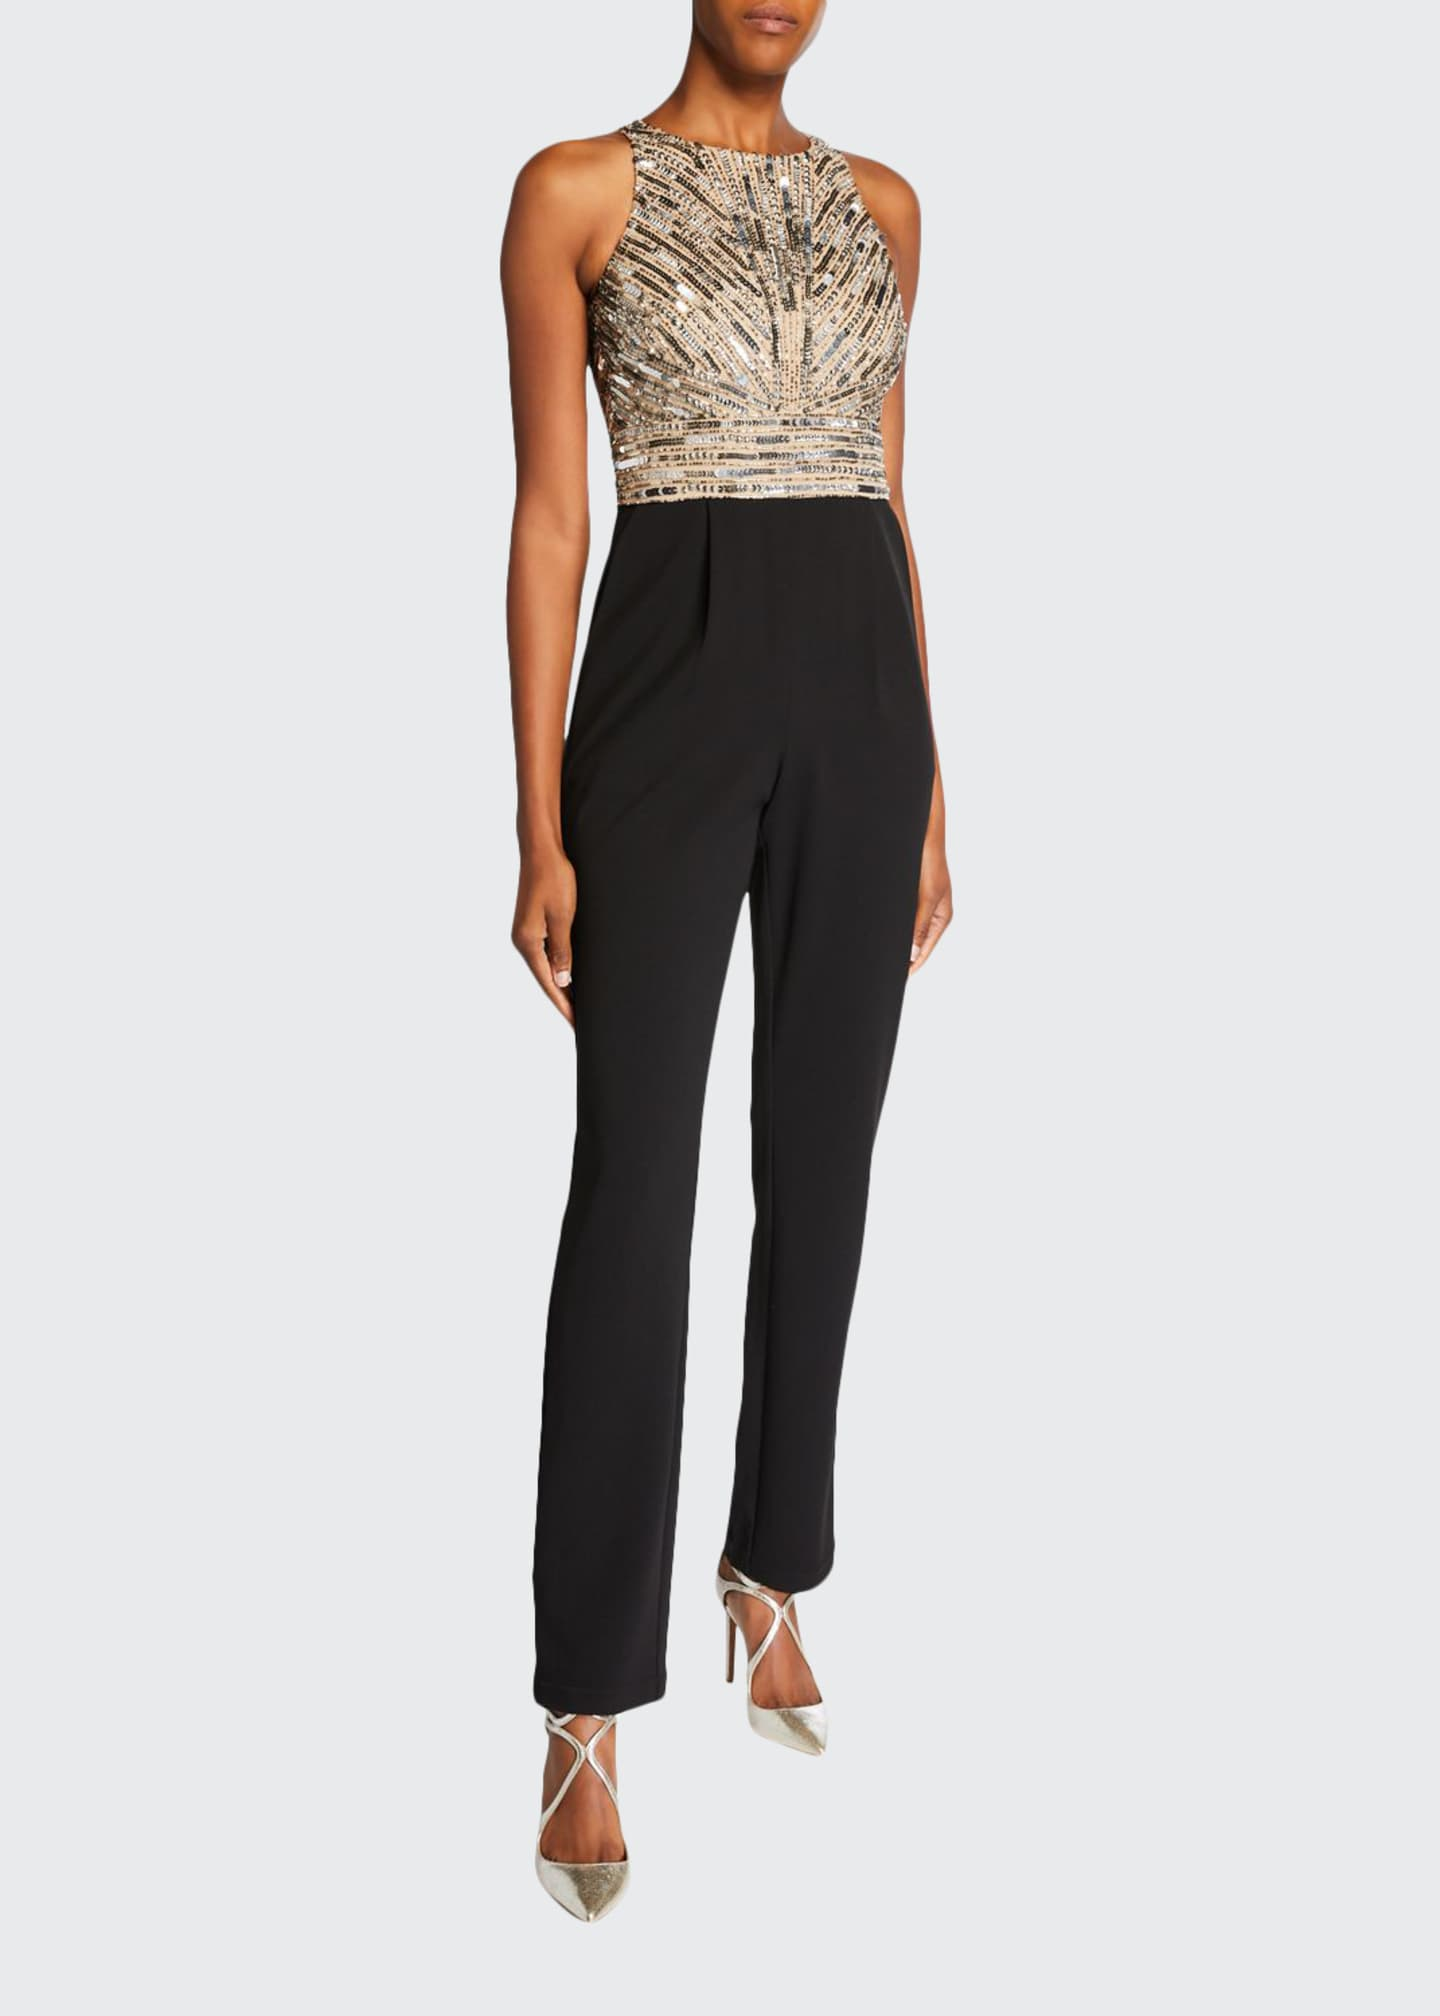 Aidan Mattox Beaded Bodice Sleeveless Jumpsuit with Crepe